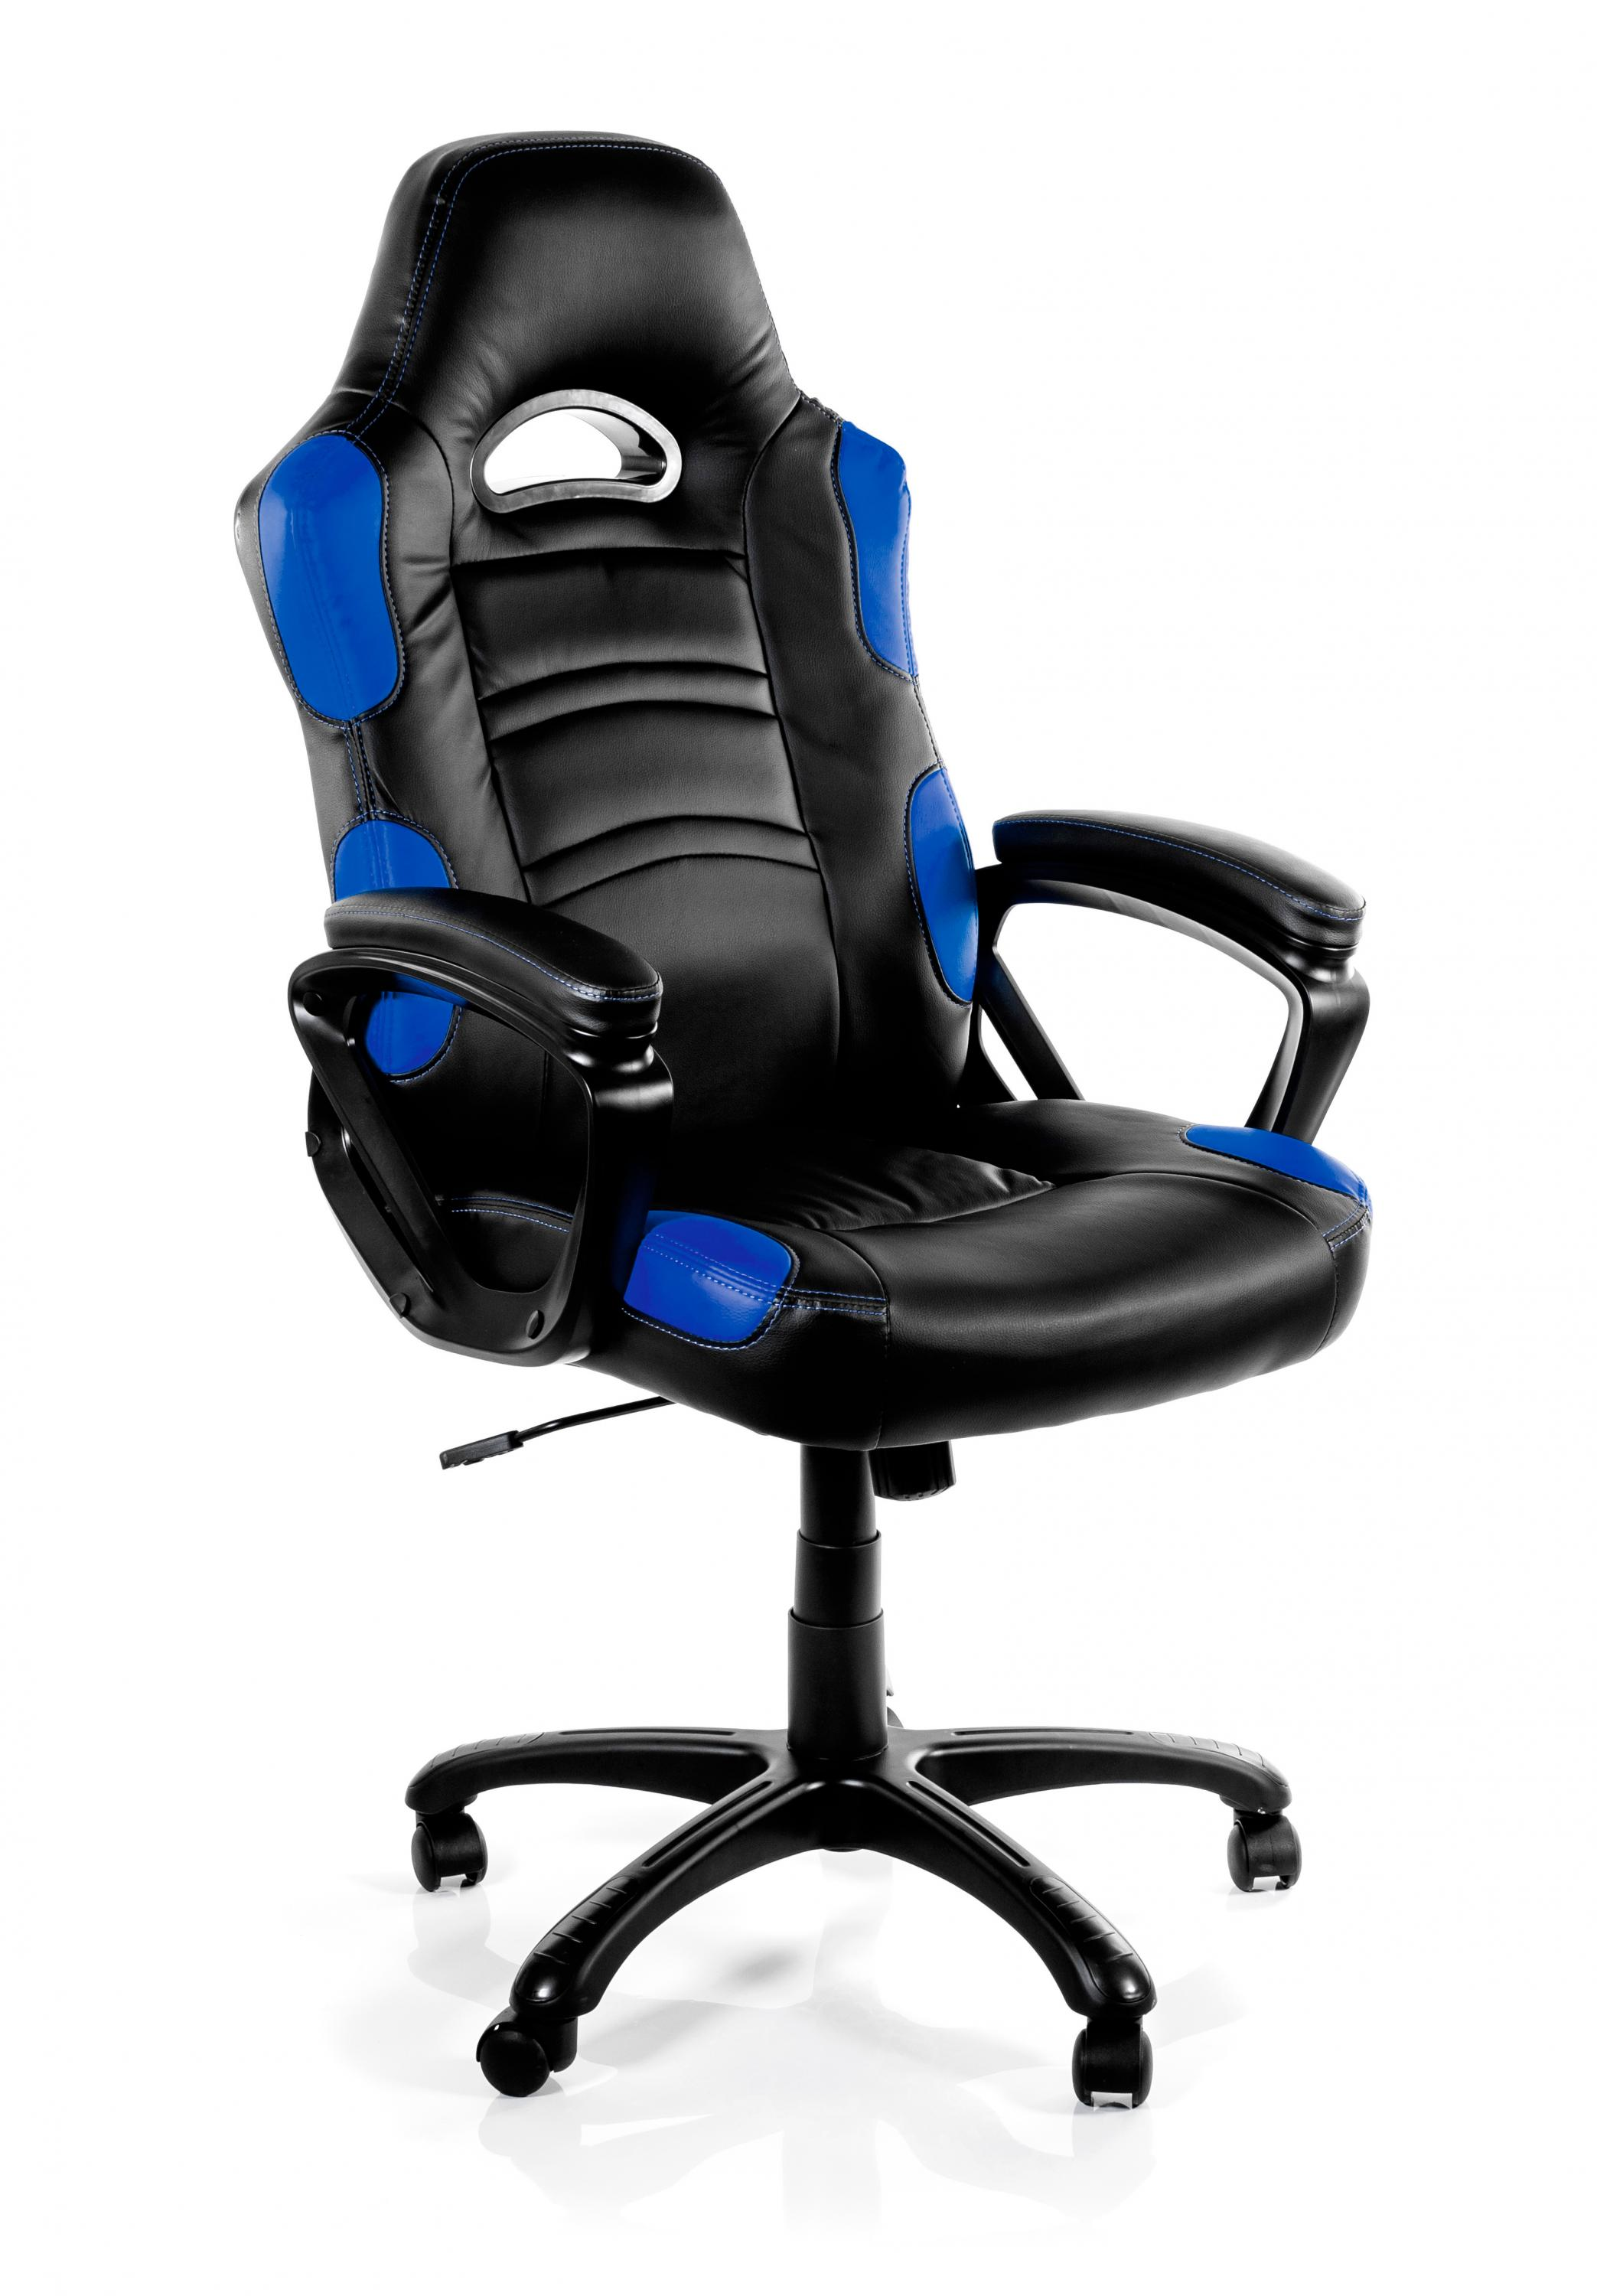 Best computer chair for gaming - 8 Arozzi Enzo